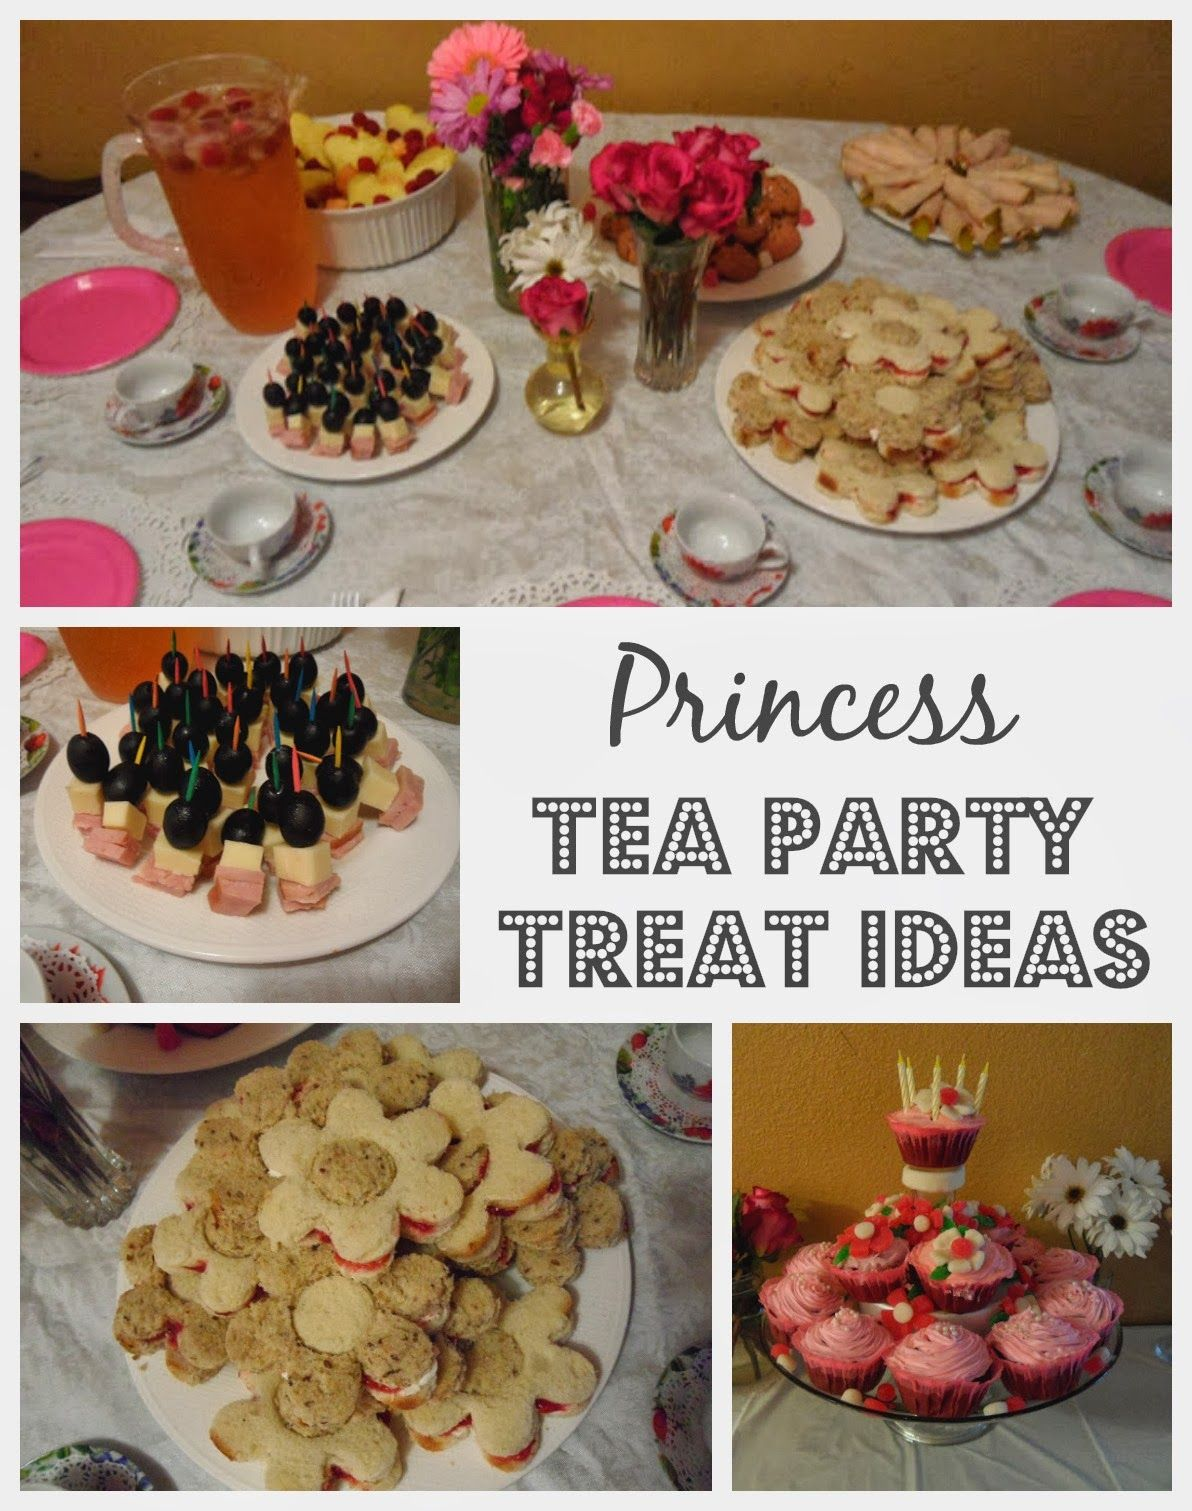 princess tea party birthday ideas | daisy birthday cake | pinterest